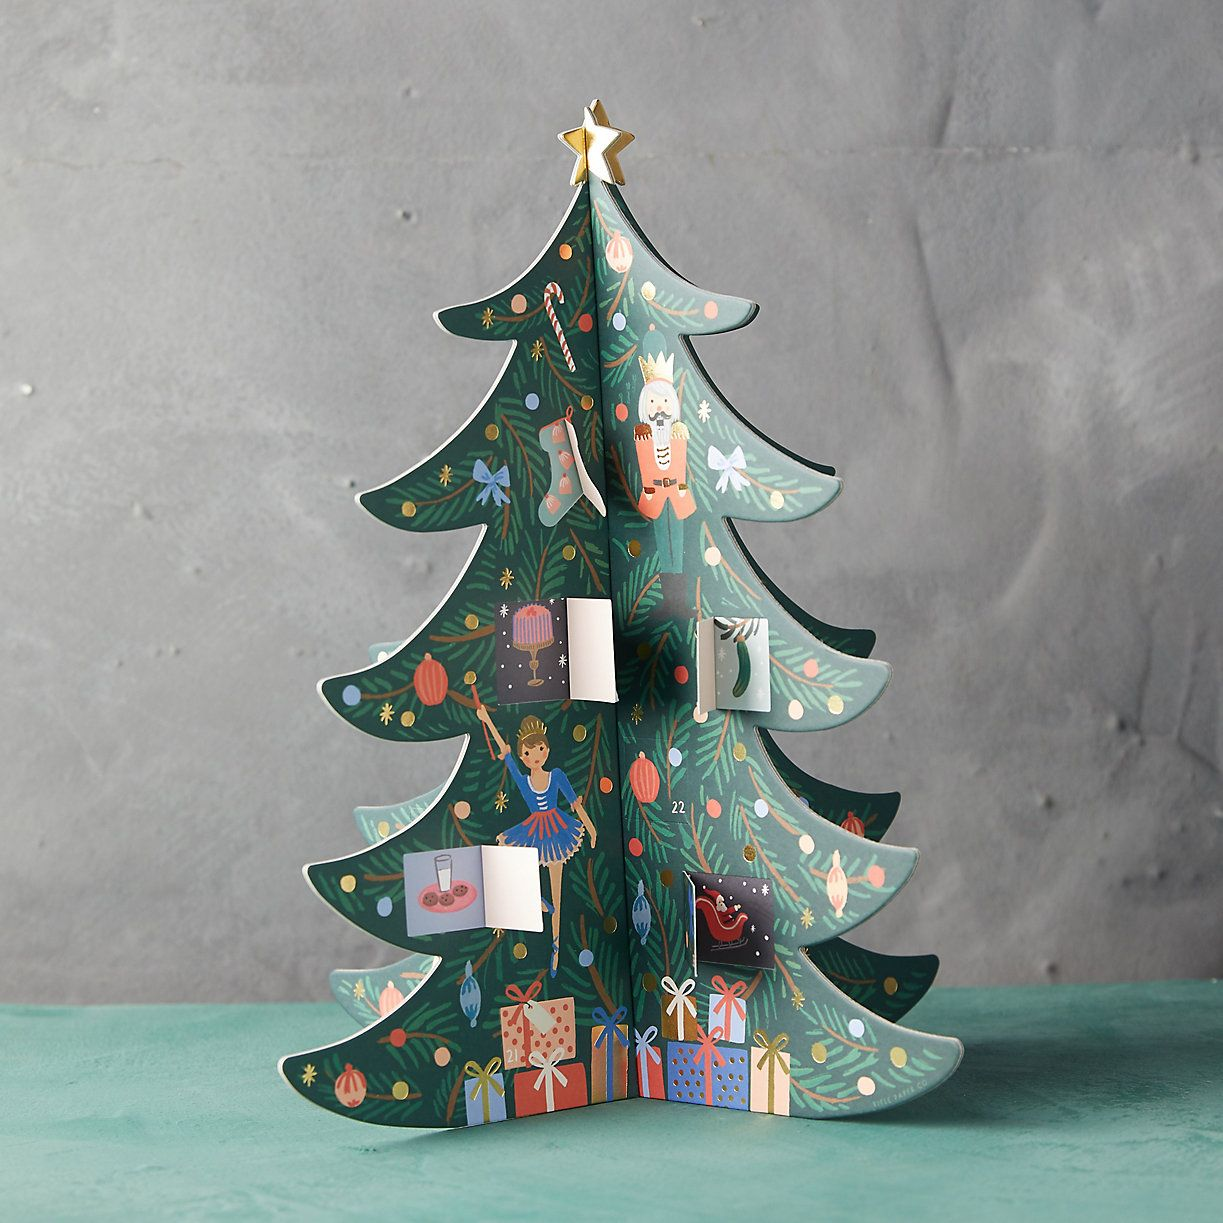 Count down the days until December 25th with this sweet advent calendar; revealing festive surprises in the Christmas tree as you go.- Paper, gold foil- Imported14